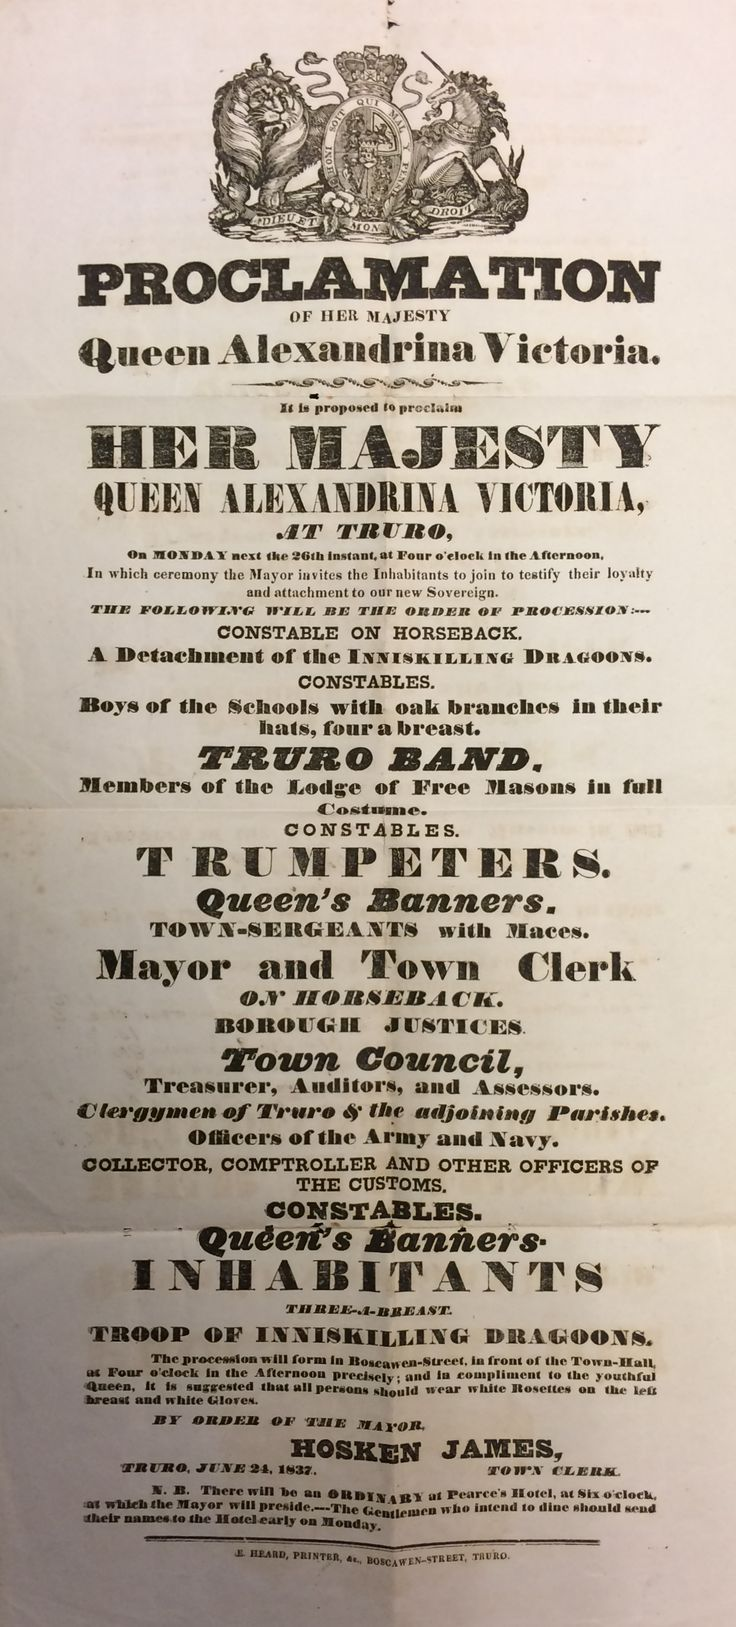 [VICTORIA]: (1819-1901) Queen of the United Kingdom Great Britain & Ireland 1837-1901. Vintage unsigned, printed broadside, one page, Truro, 26th June 1837, being a proclamation, declaring, in part, 'It is proposed to proclaim Her Majesty Queen Alexandrina Victoria, at Truro, on Monday next the 26th instant, at four o'clock in the afternoon. In which ceremony the Mayor invites the inhabitants to join to testify their loyalty and attachment to our new Sovereign'